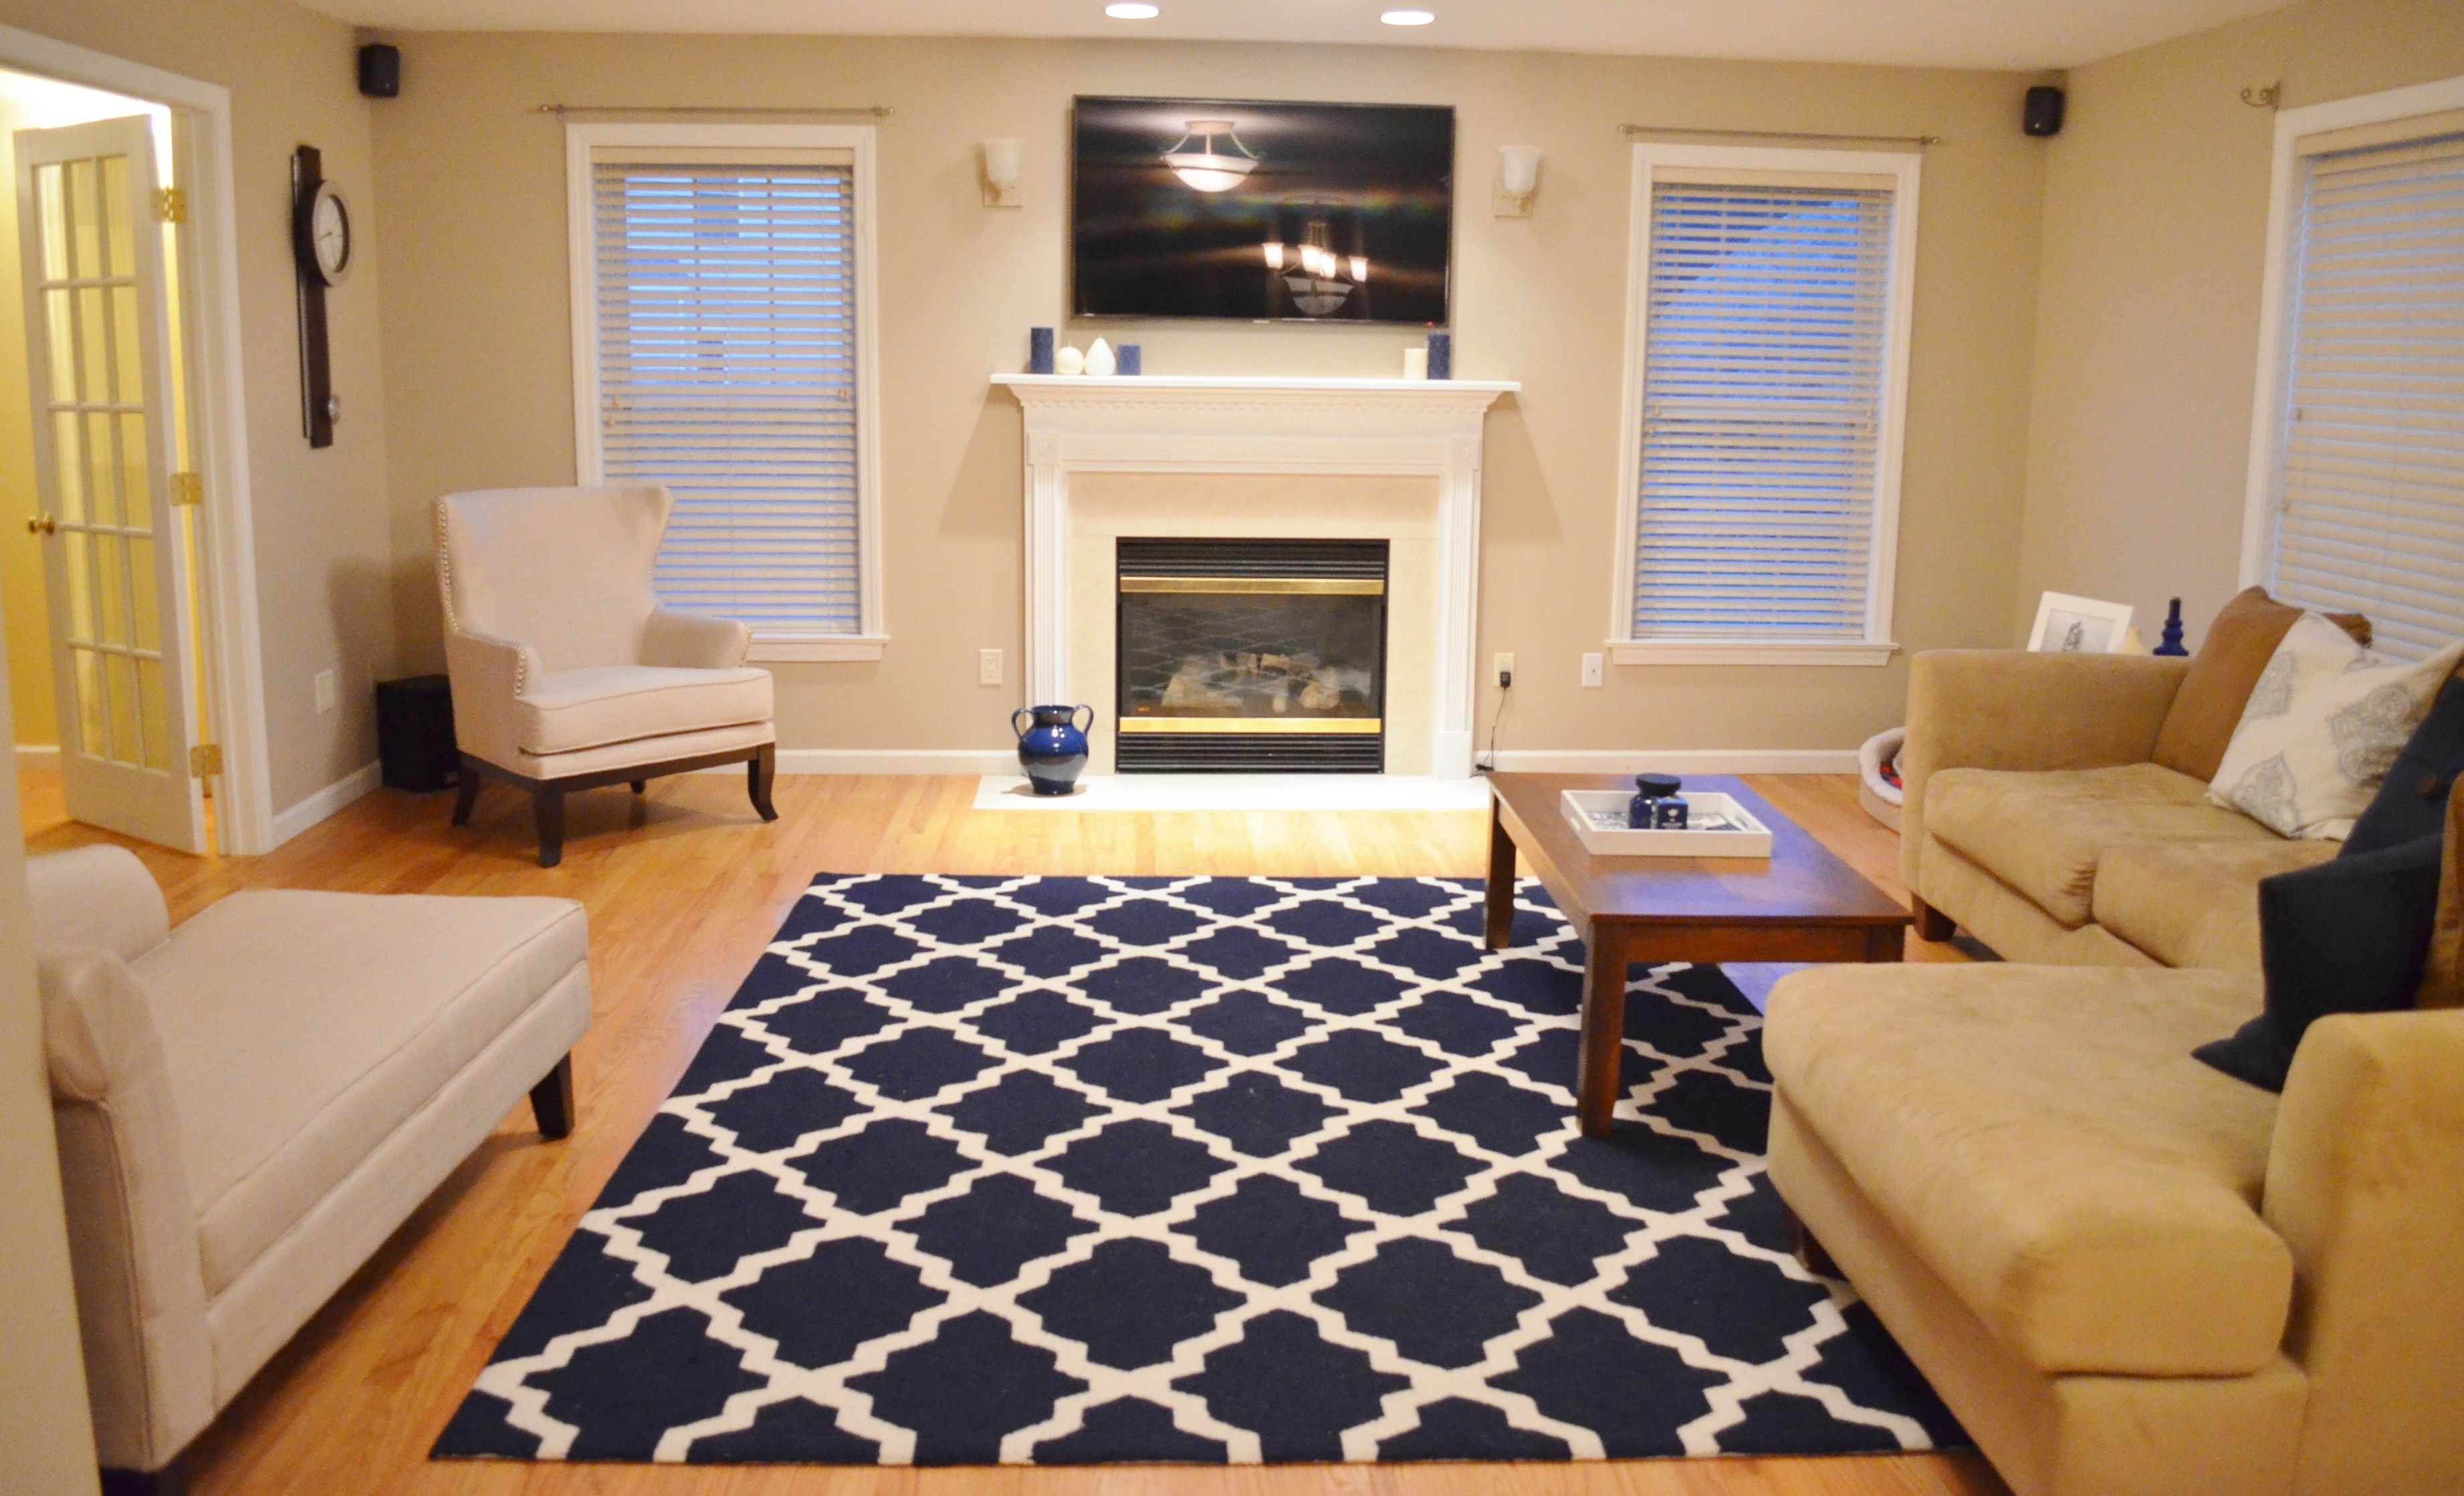 Featuring rugs usa navy blue moroccan trellis area rug living room pinterest for Navy blue carpet living room